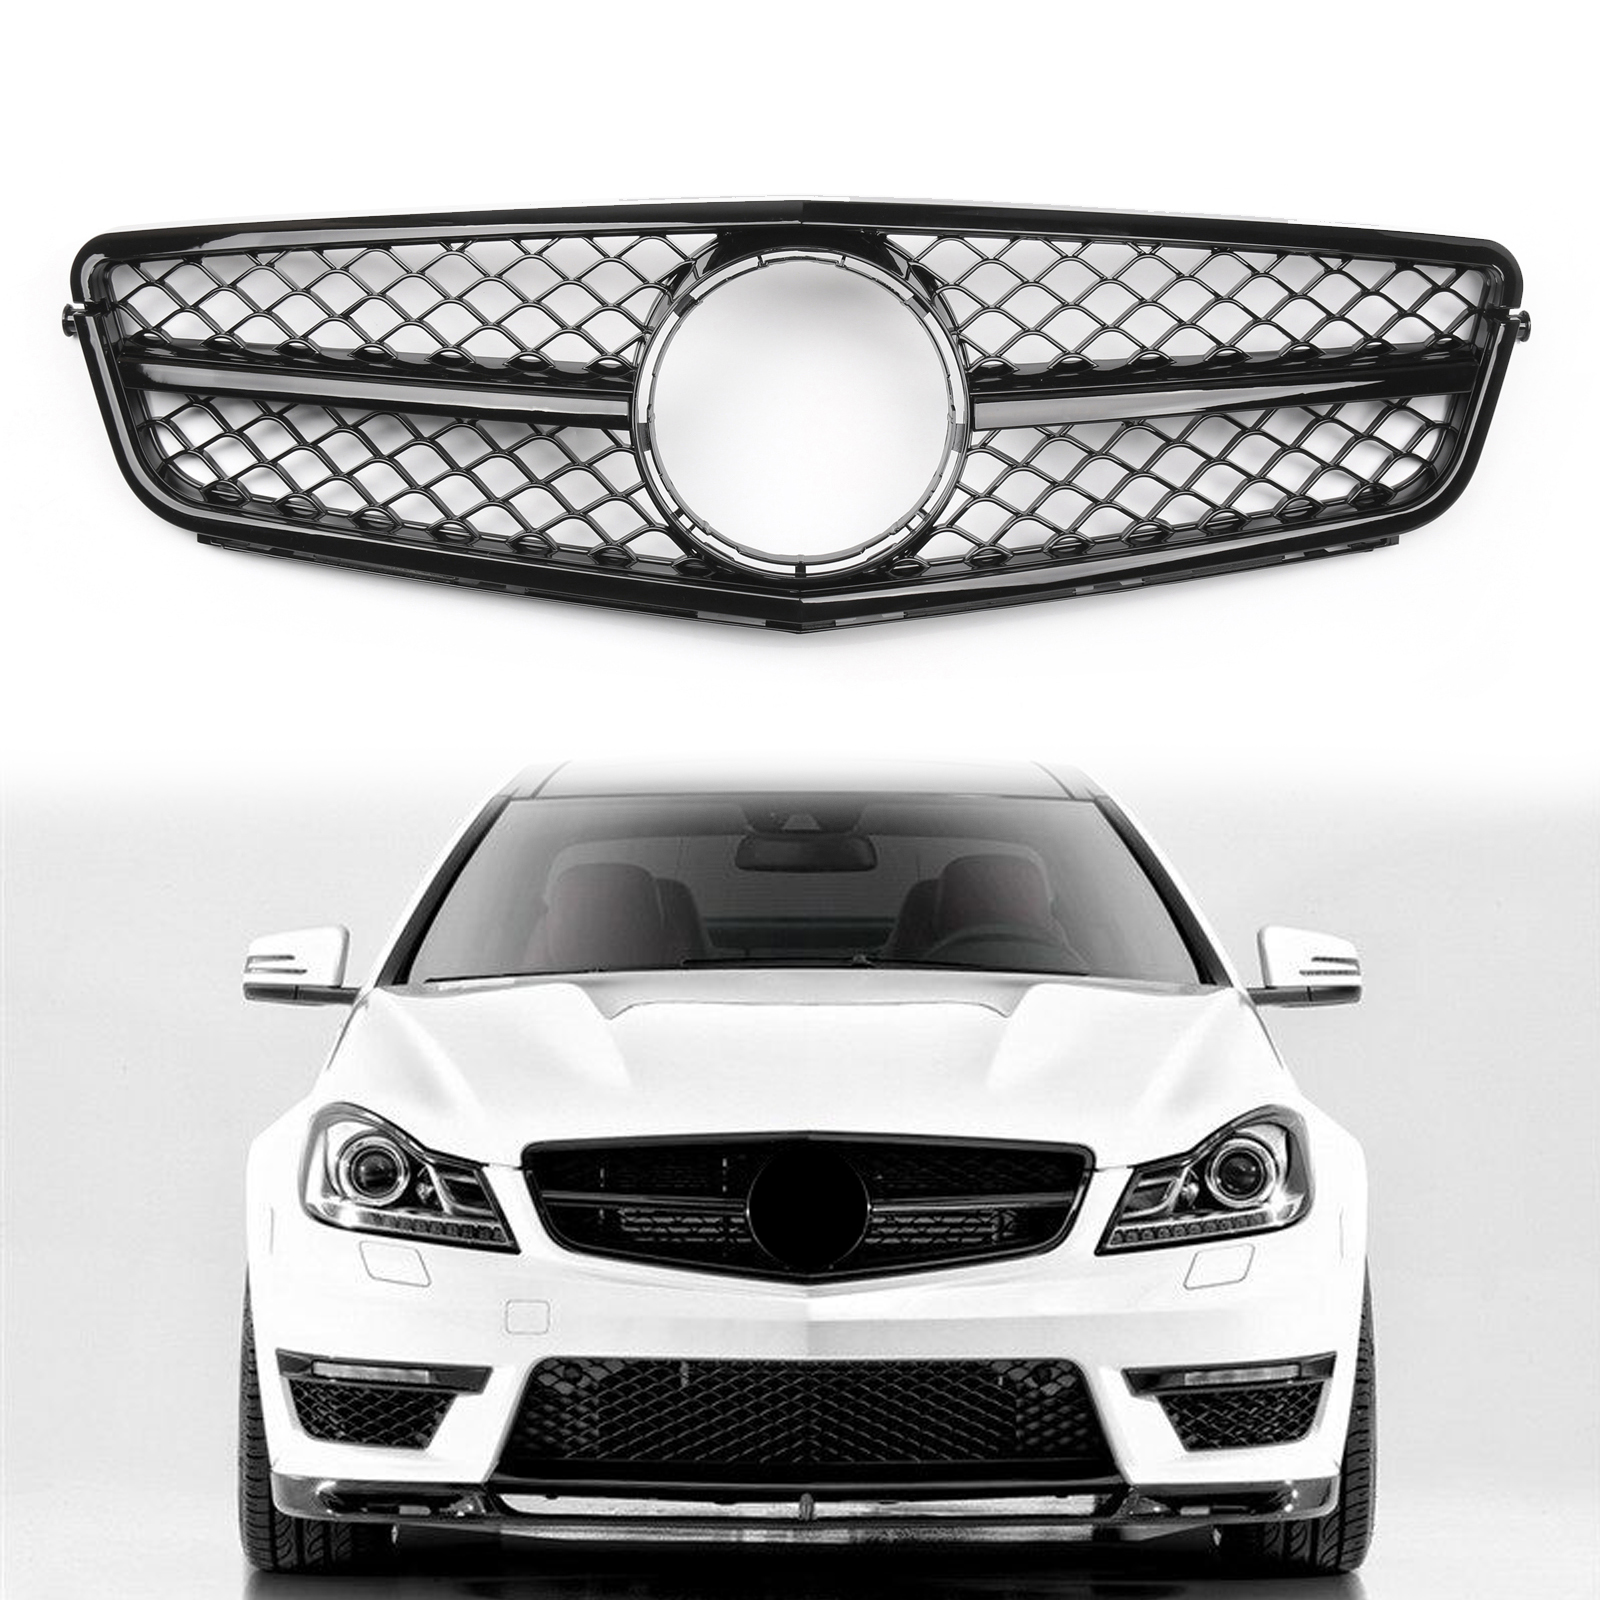 Areyourshop ABS Black Front Bumper Grille <font><b>Grill</b></font> For <font><b>Benz</b></font> C-Class <font><b>W204</b></font> C300 C350 2008-2014 Front Upper <font><b>Grill</b></font> Car Auto Parts image